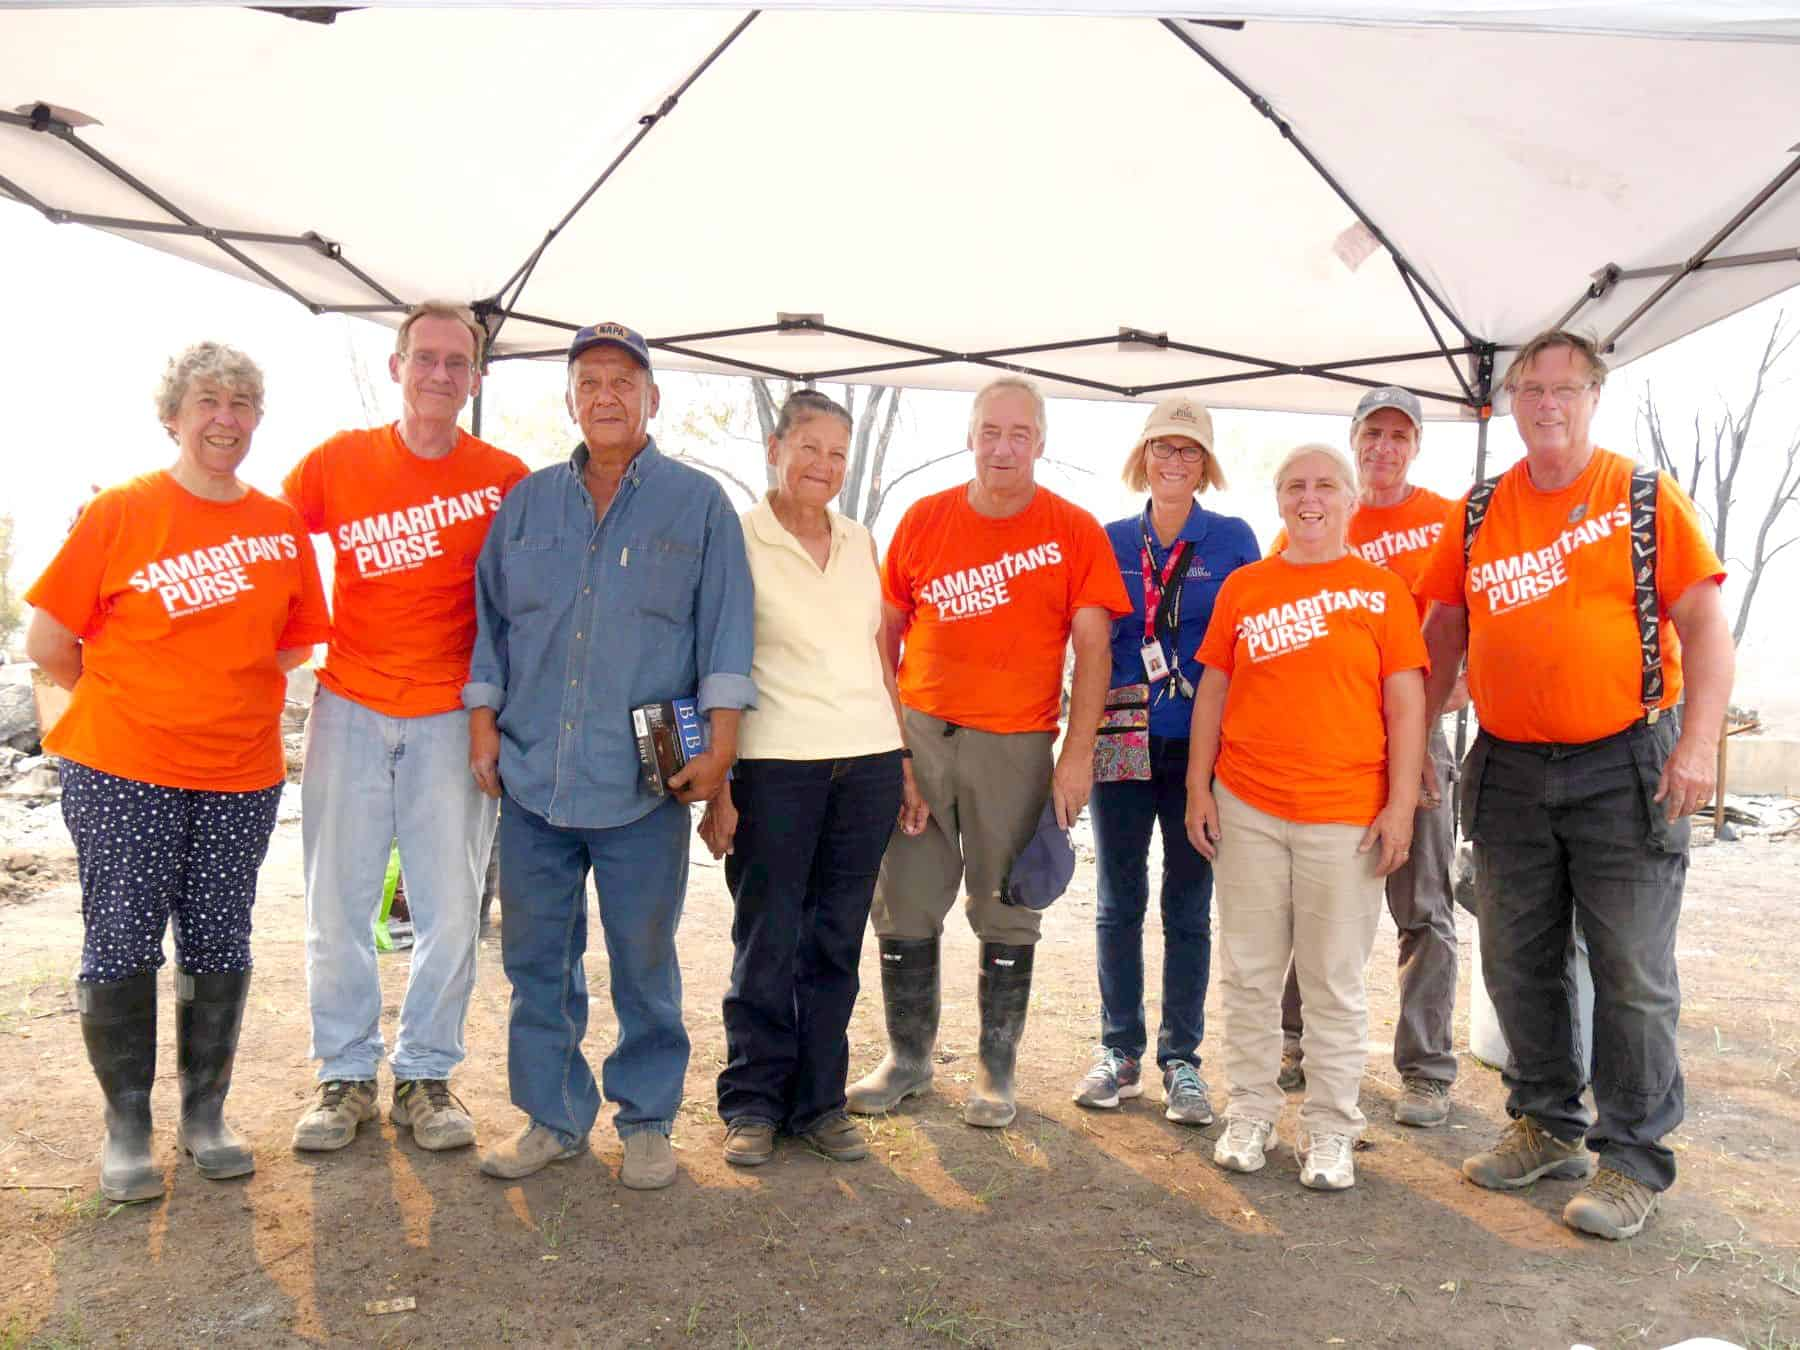 Ruth and her husband Les, pictured here with Samaritan's Purse volunteers and Billy Graham Rapid Response Team chaplains (pictured in blue), lost virtually everything they owned in the wildfire surrounding Ashcroft, BC.